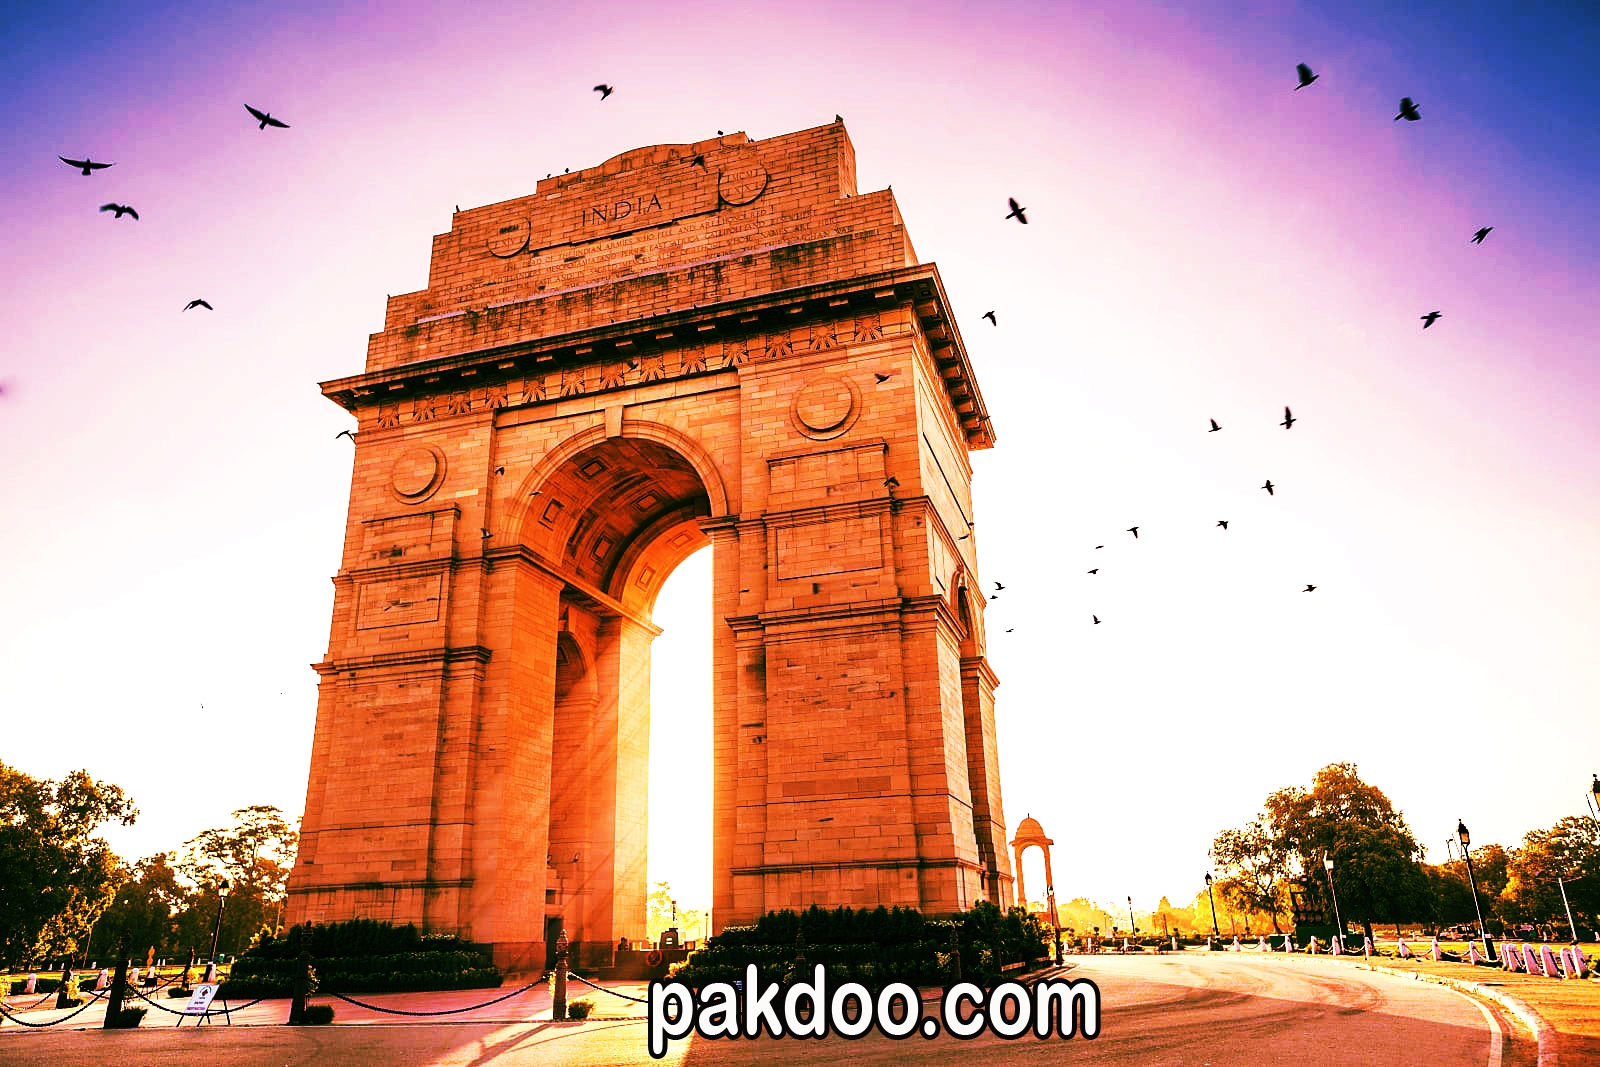 patriotic places to visit in delhi india for travellers - India Gate